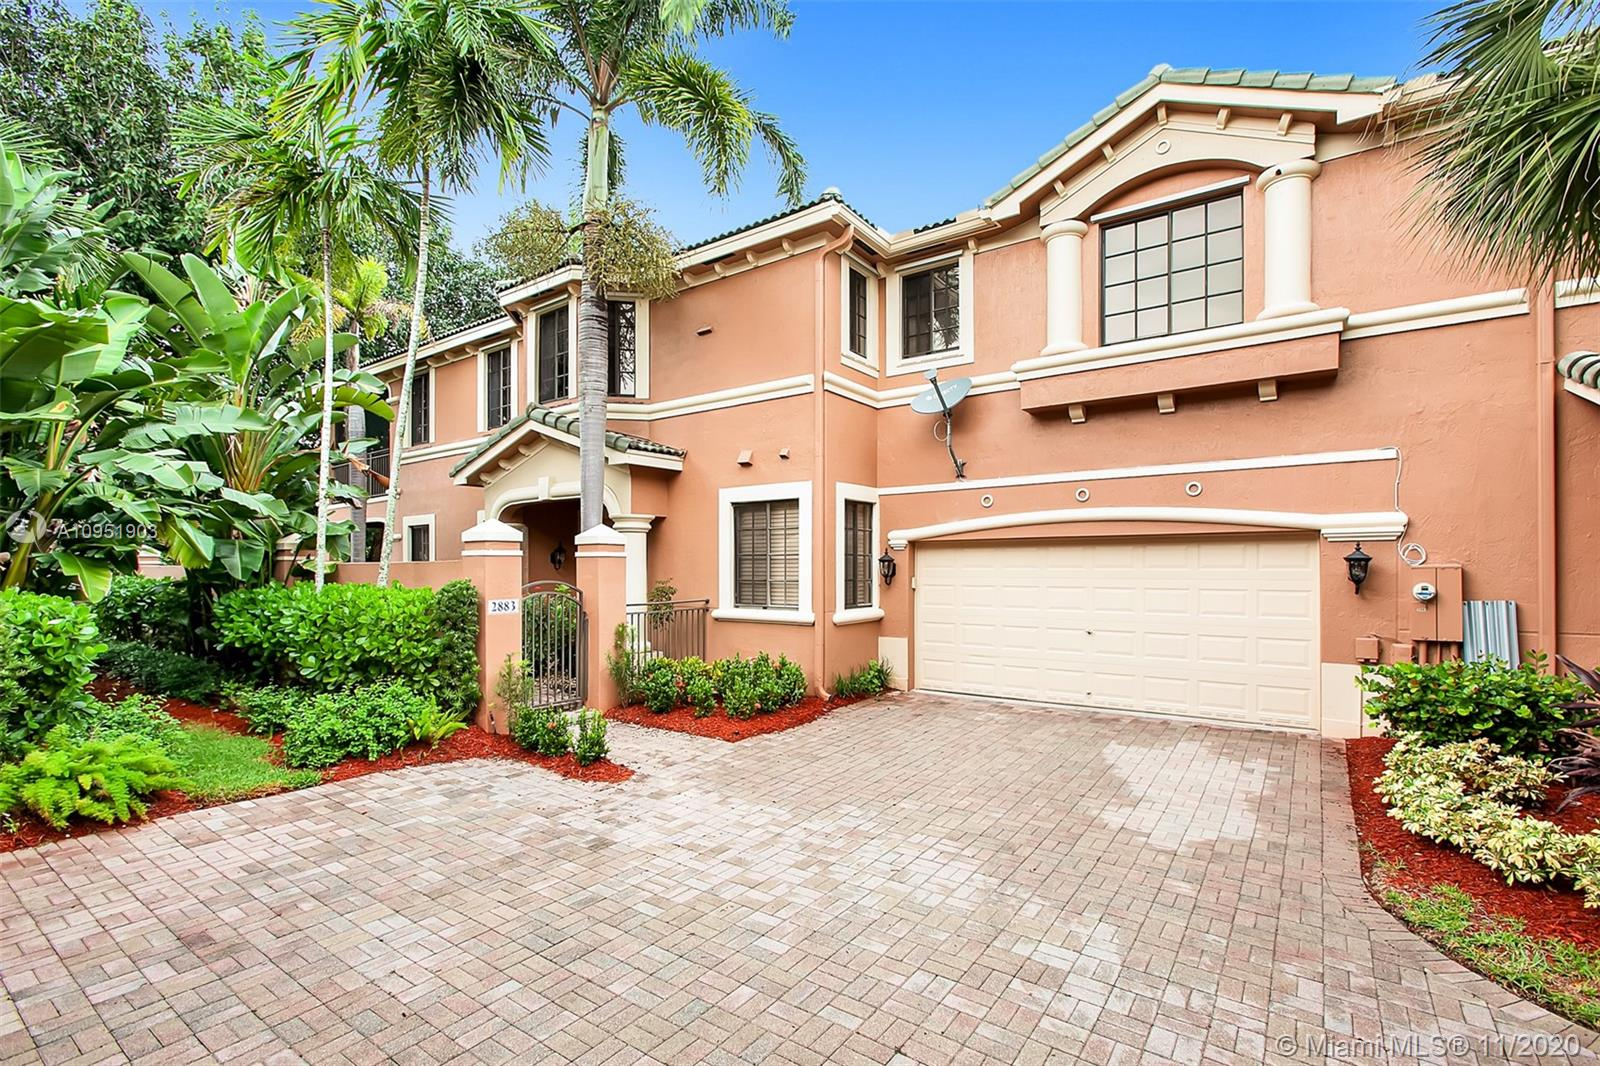 Don't miss this opportunity!! Magnificent and Spacious Augusta model townhome. 3 bedrooms / 2 bathrooms in Exclusive Weston Hills Country Club. First floor unit. Overlooking the gorgeous Weston Hills Golf Course. This is an end unit (Only two units coach home). Attach two Car Garage. The Best community in Weston. Property is rented until November 30th 2020.